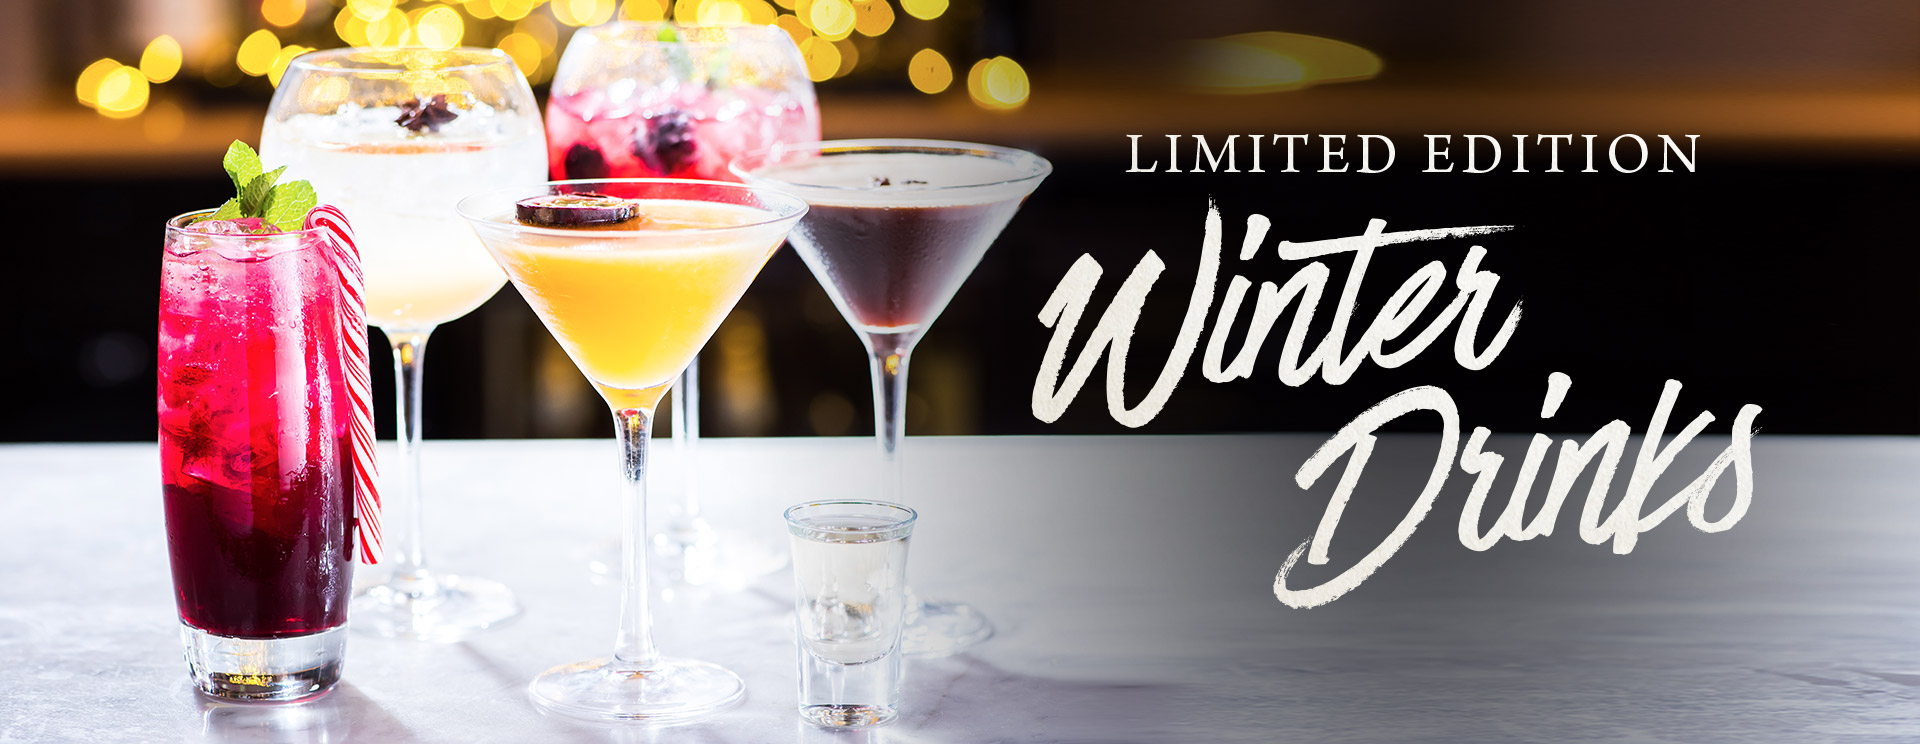 Limited edition winter drinks at The Blue Anchor